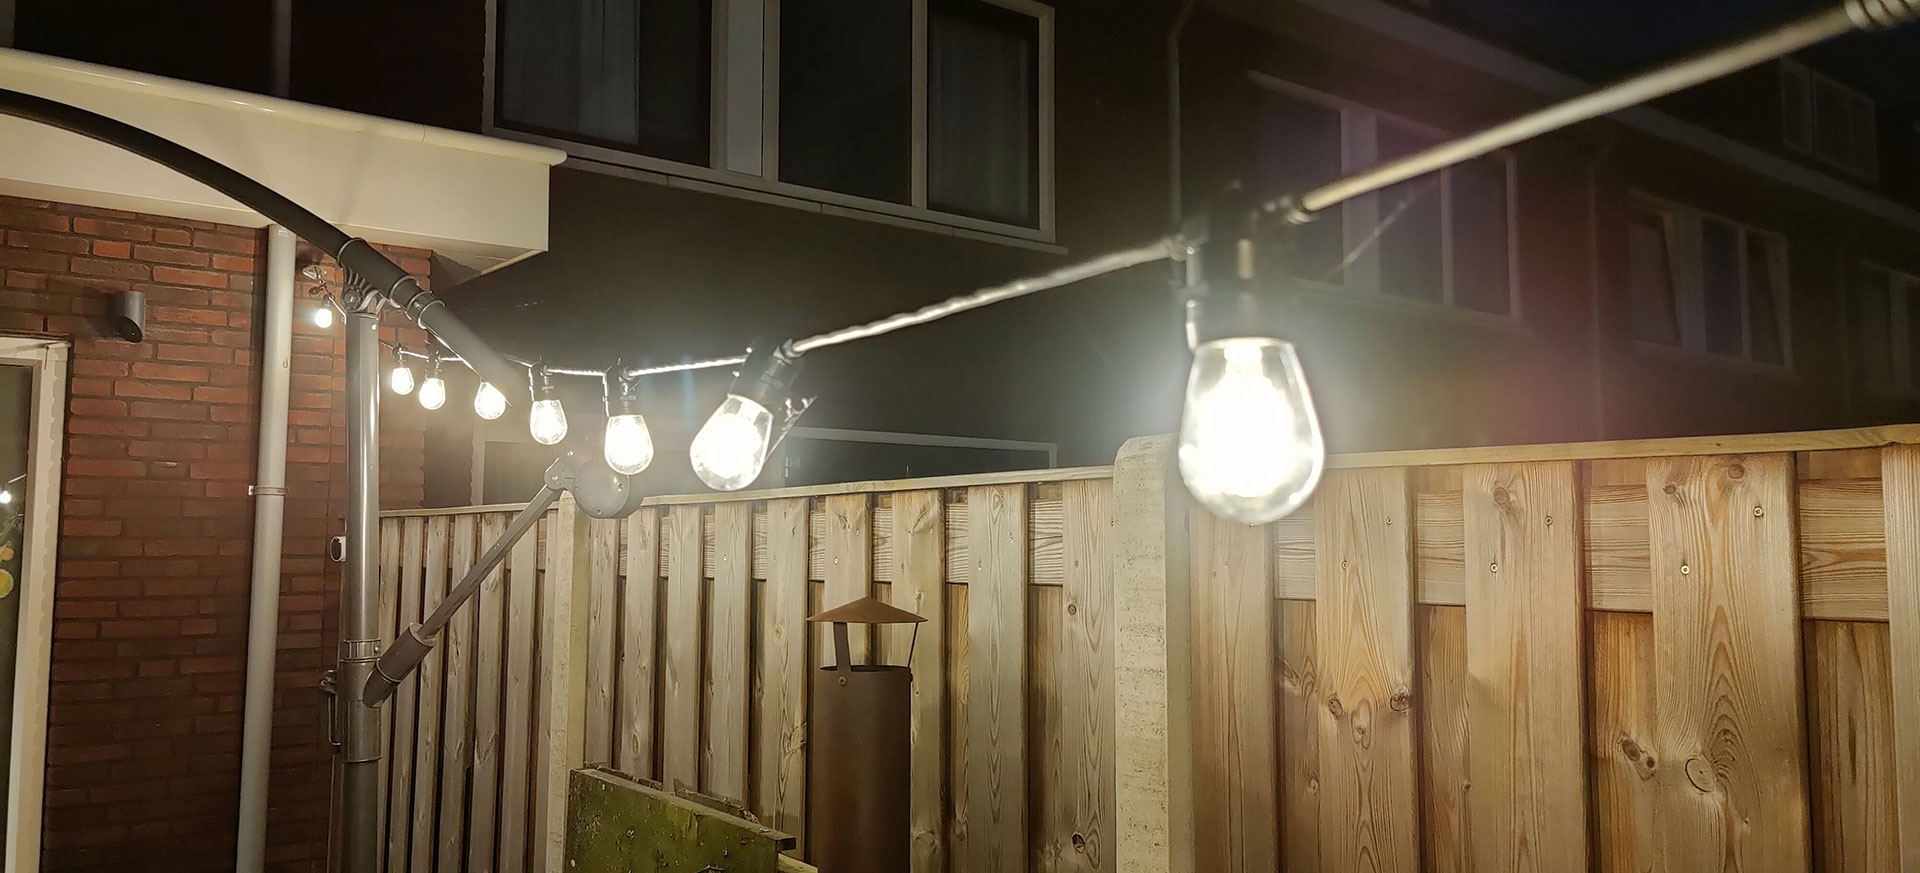 DreamLED Outdoor LED String OLS-810 in de nacht